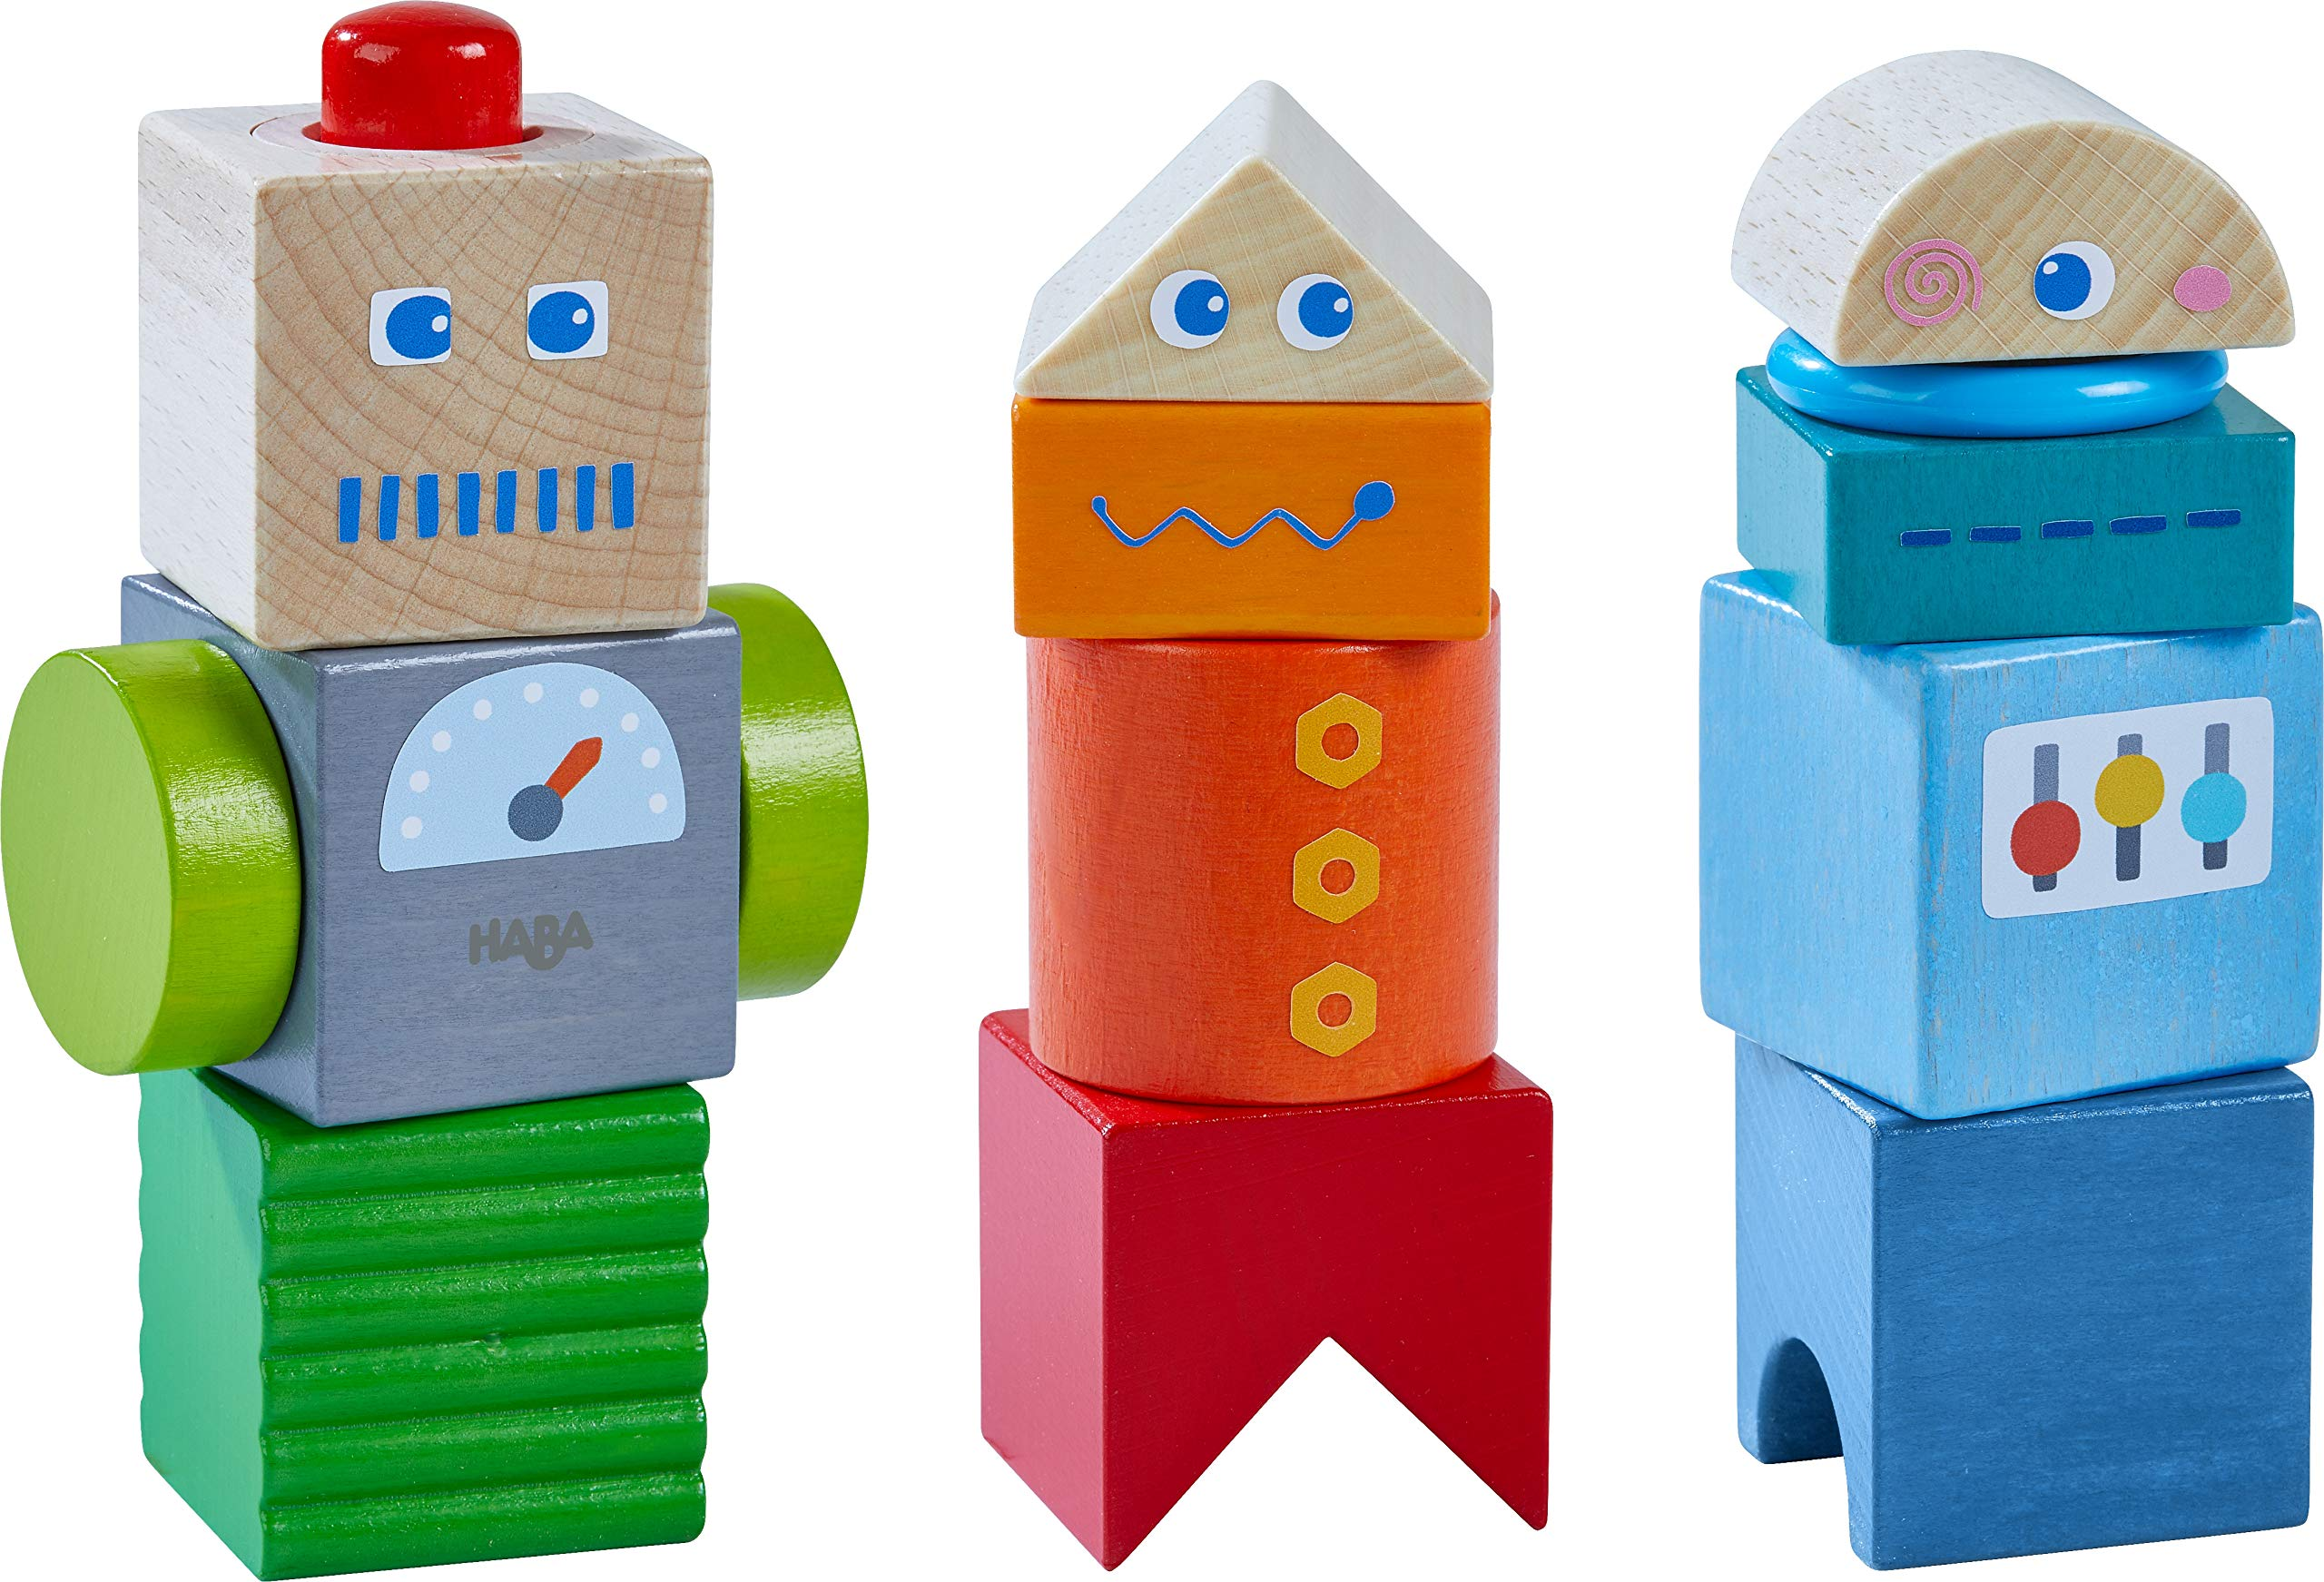 HABA Discovery Blocks Robot Friends - 9 Unique Colored Cubes with Visual & Acoustic Affects (Made in Germany)